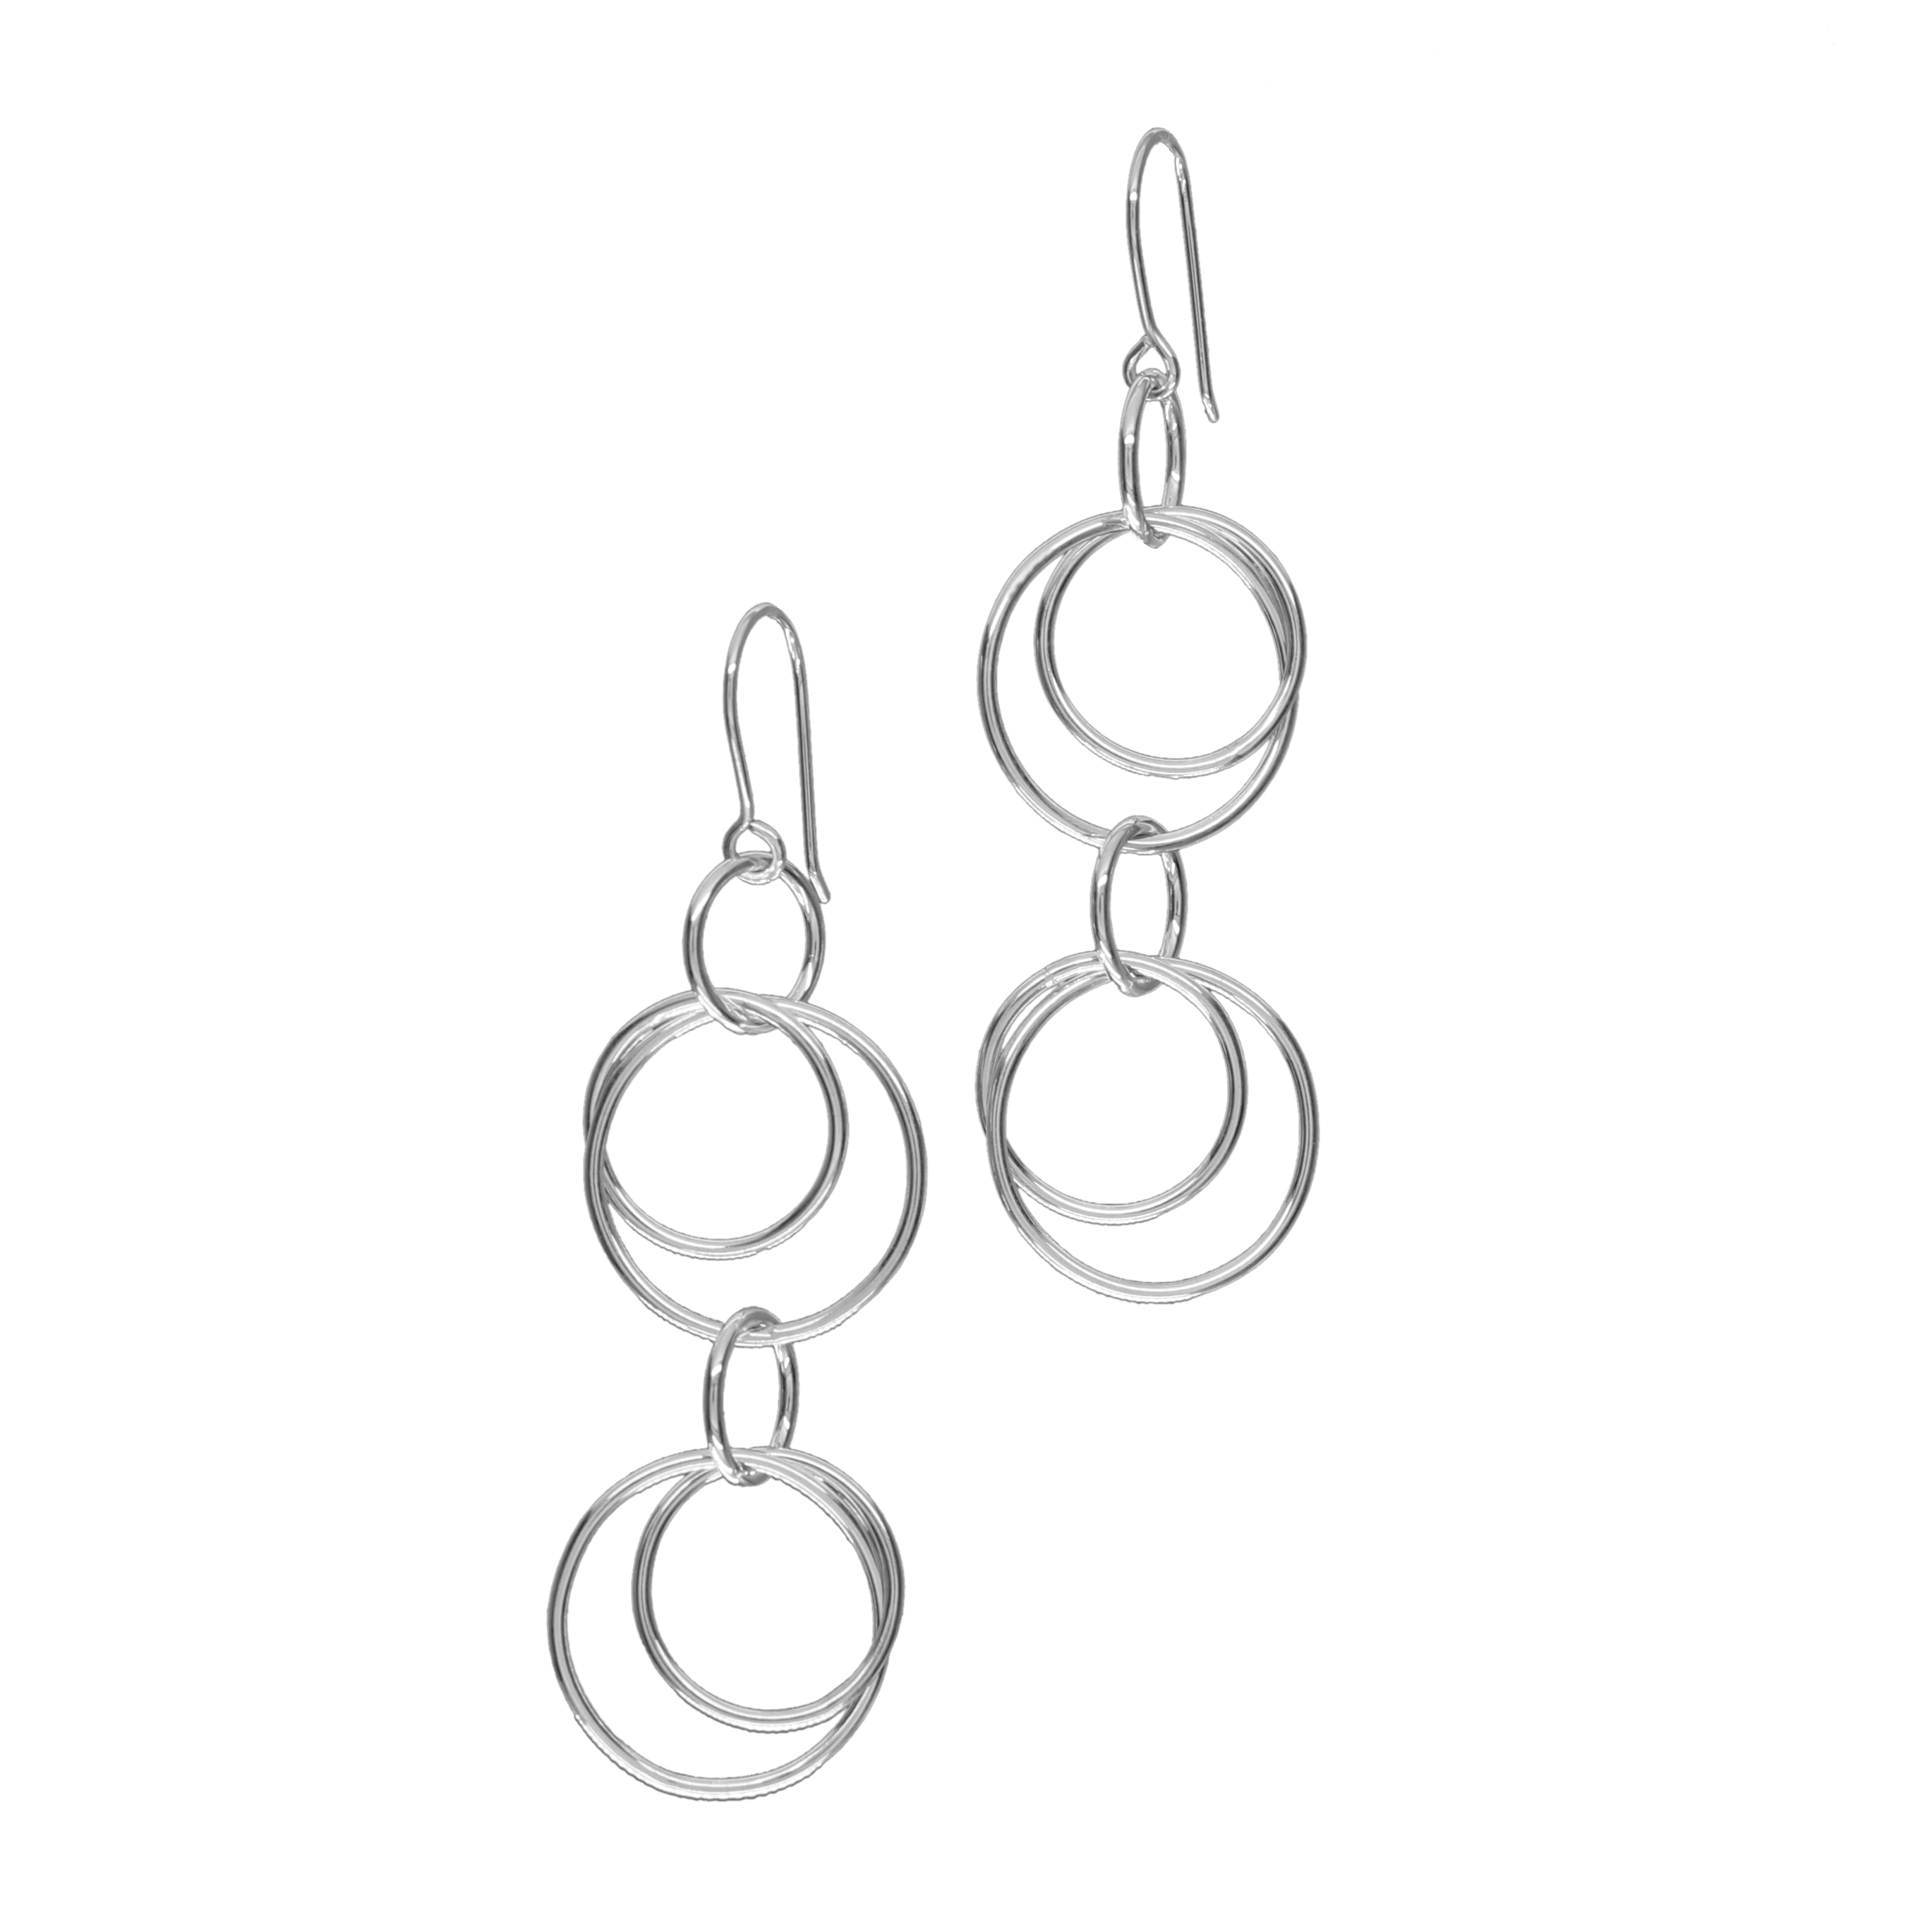 Circles double-drop earrings